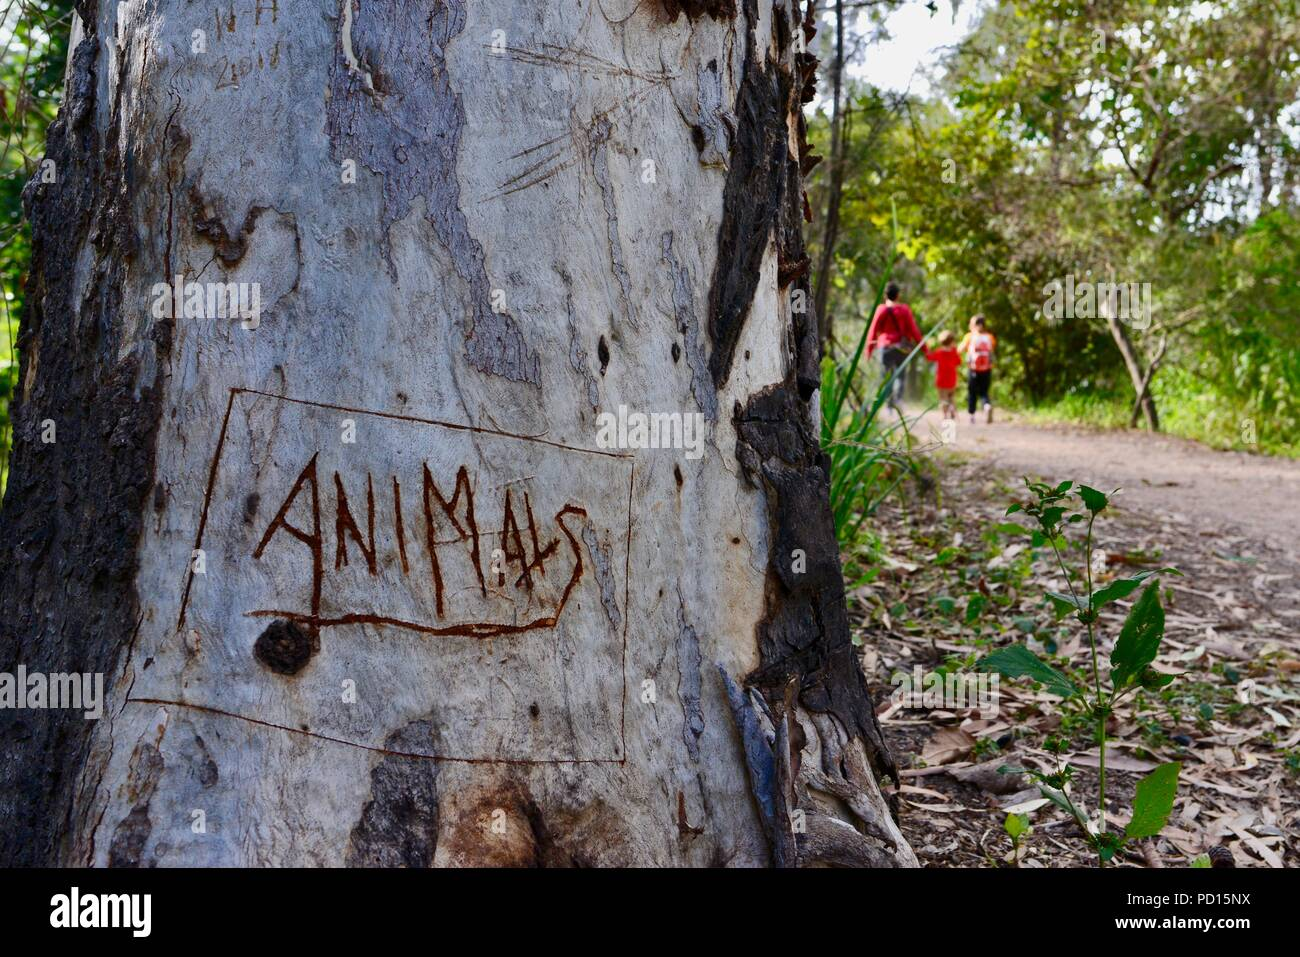 Tree with the word animals engraved into it, Booroona walking trail on the Ross River, Rasmussen QLD 4815, Australia - Stock Image